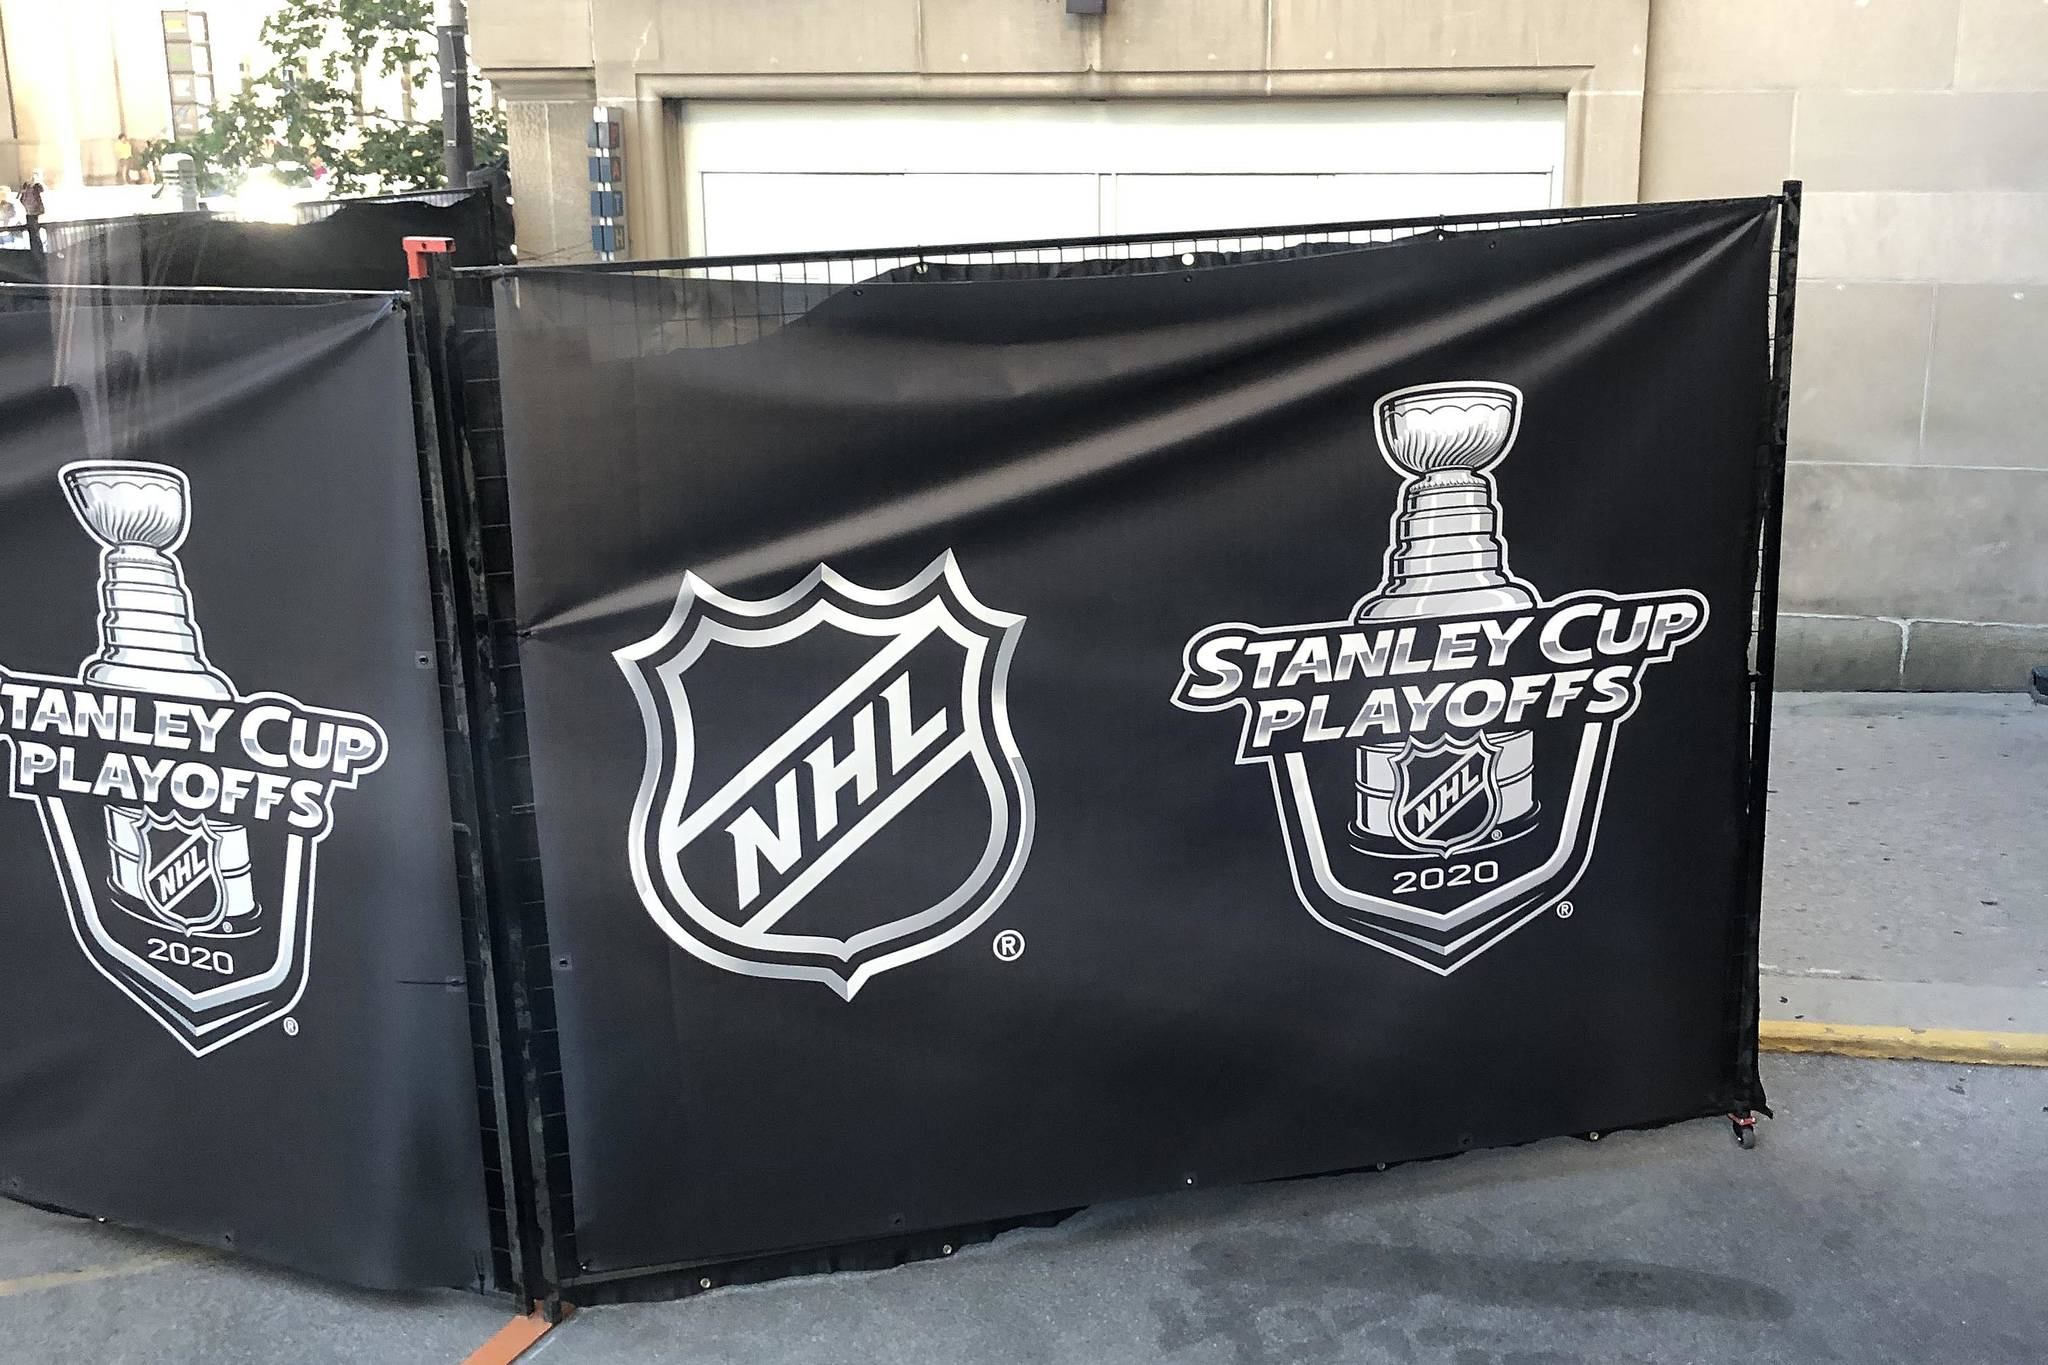 Behind this temporary wall is the 'NHL bubble', where once players and officials get behind it, they will be isolated due to special COVID-19 restrictions. (PHOTO COURTESY ROB SHICK)